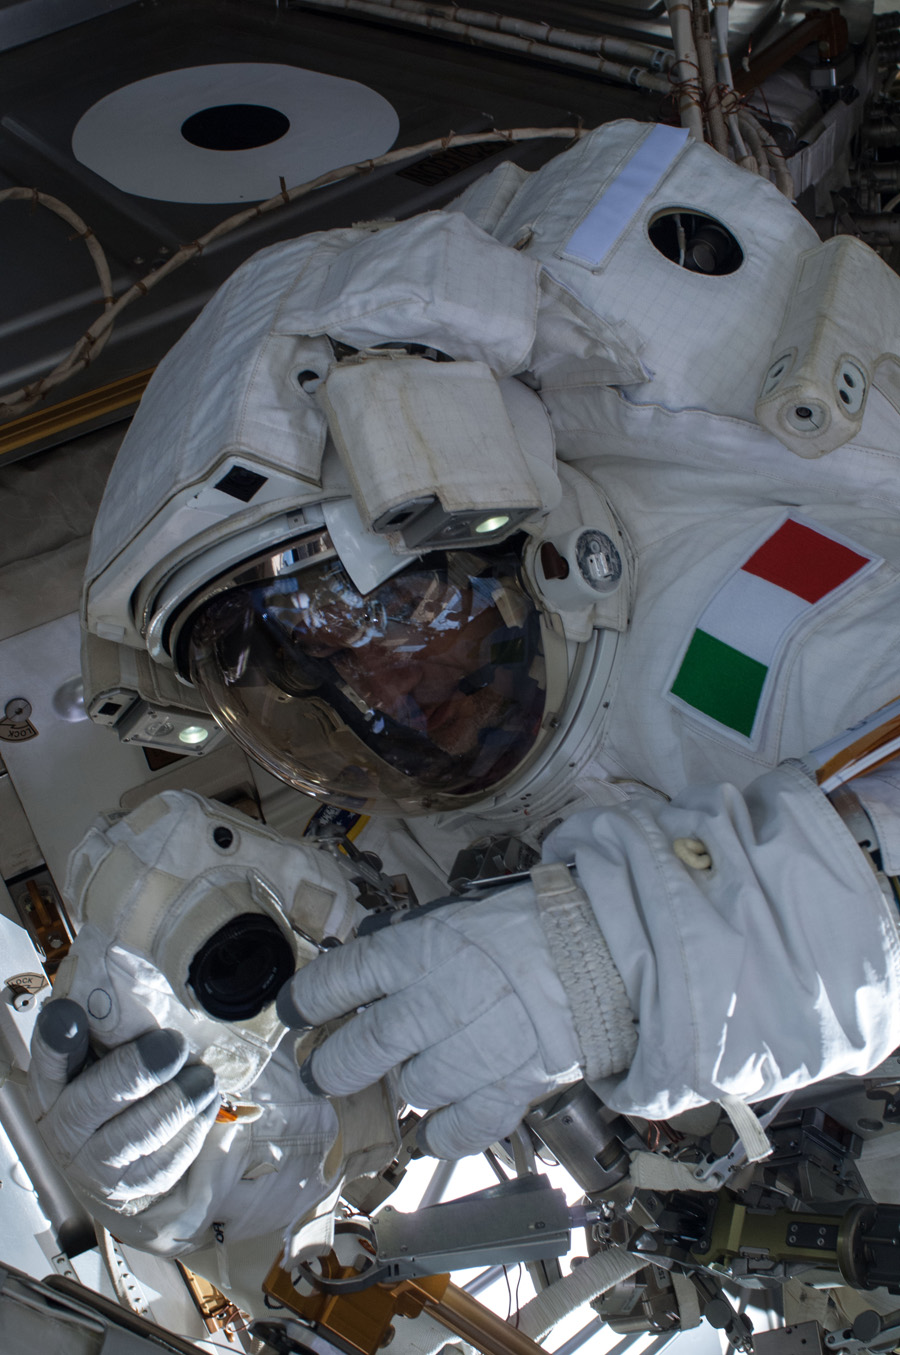 Parmitano Reports Water Floating in Helmet During Spacewalk